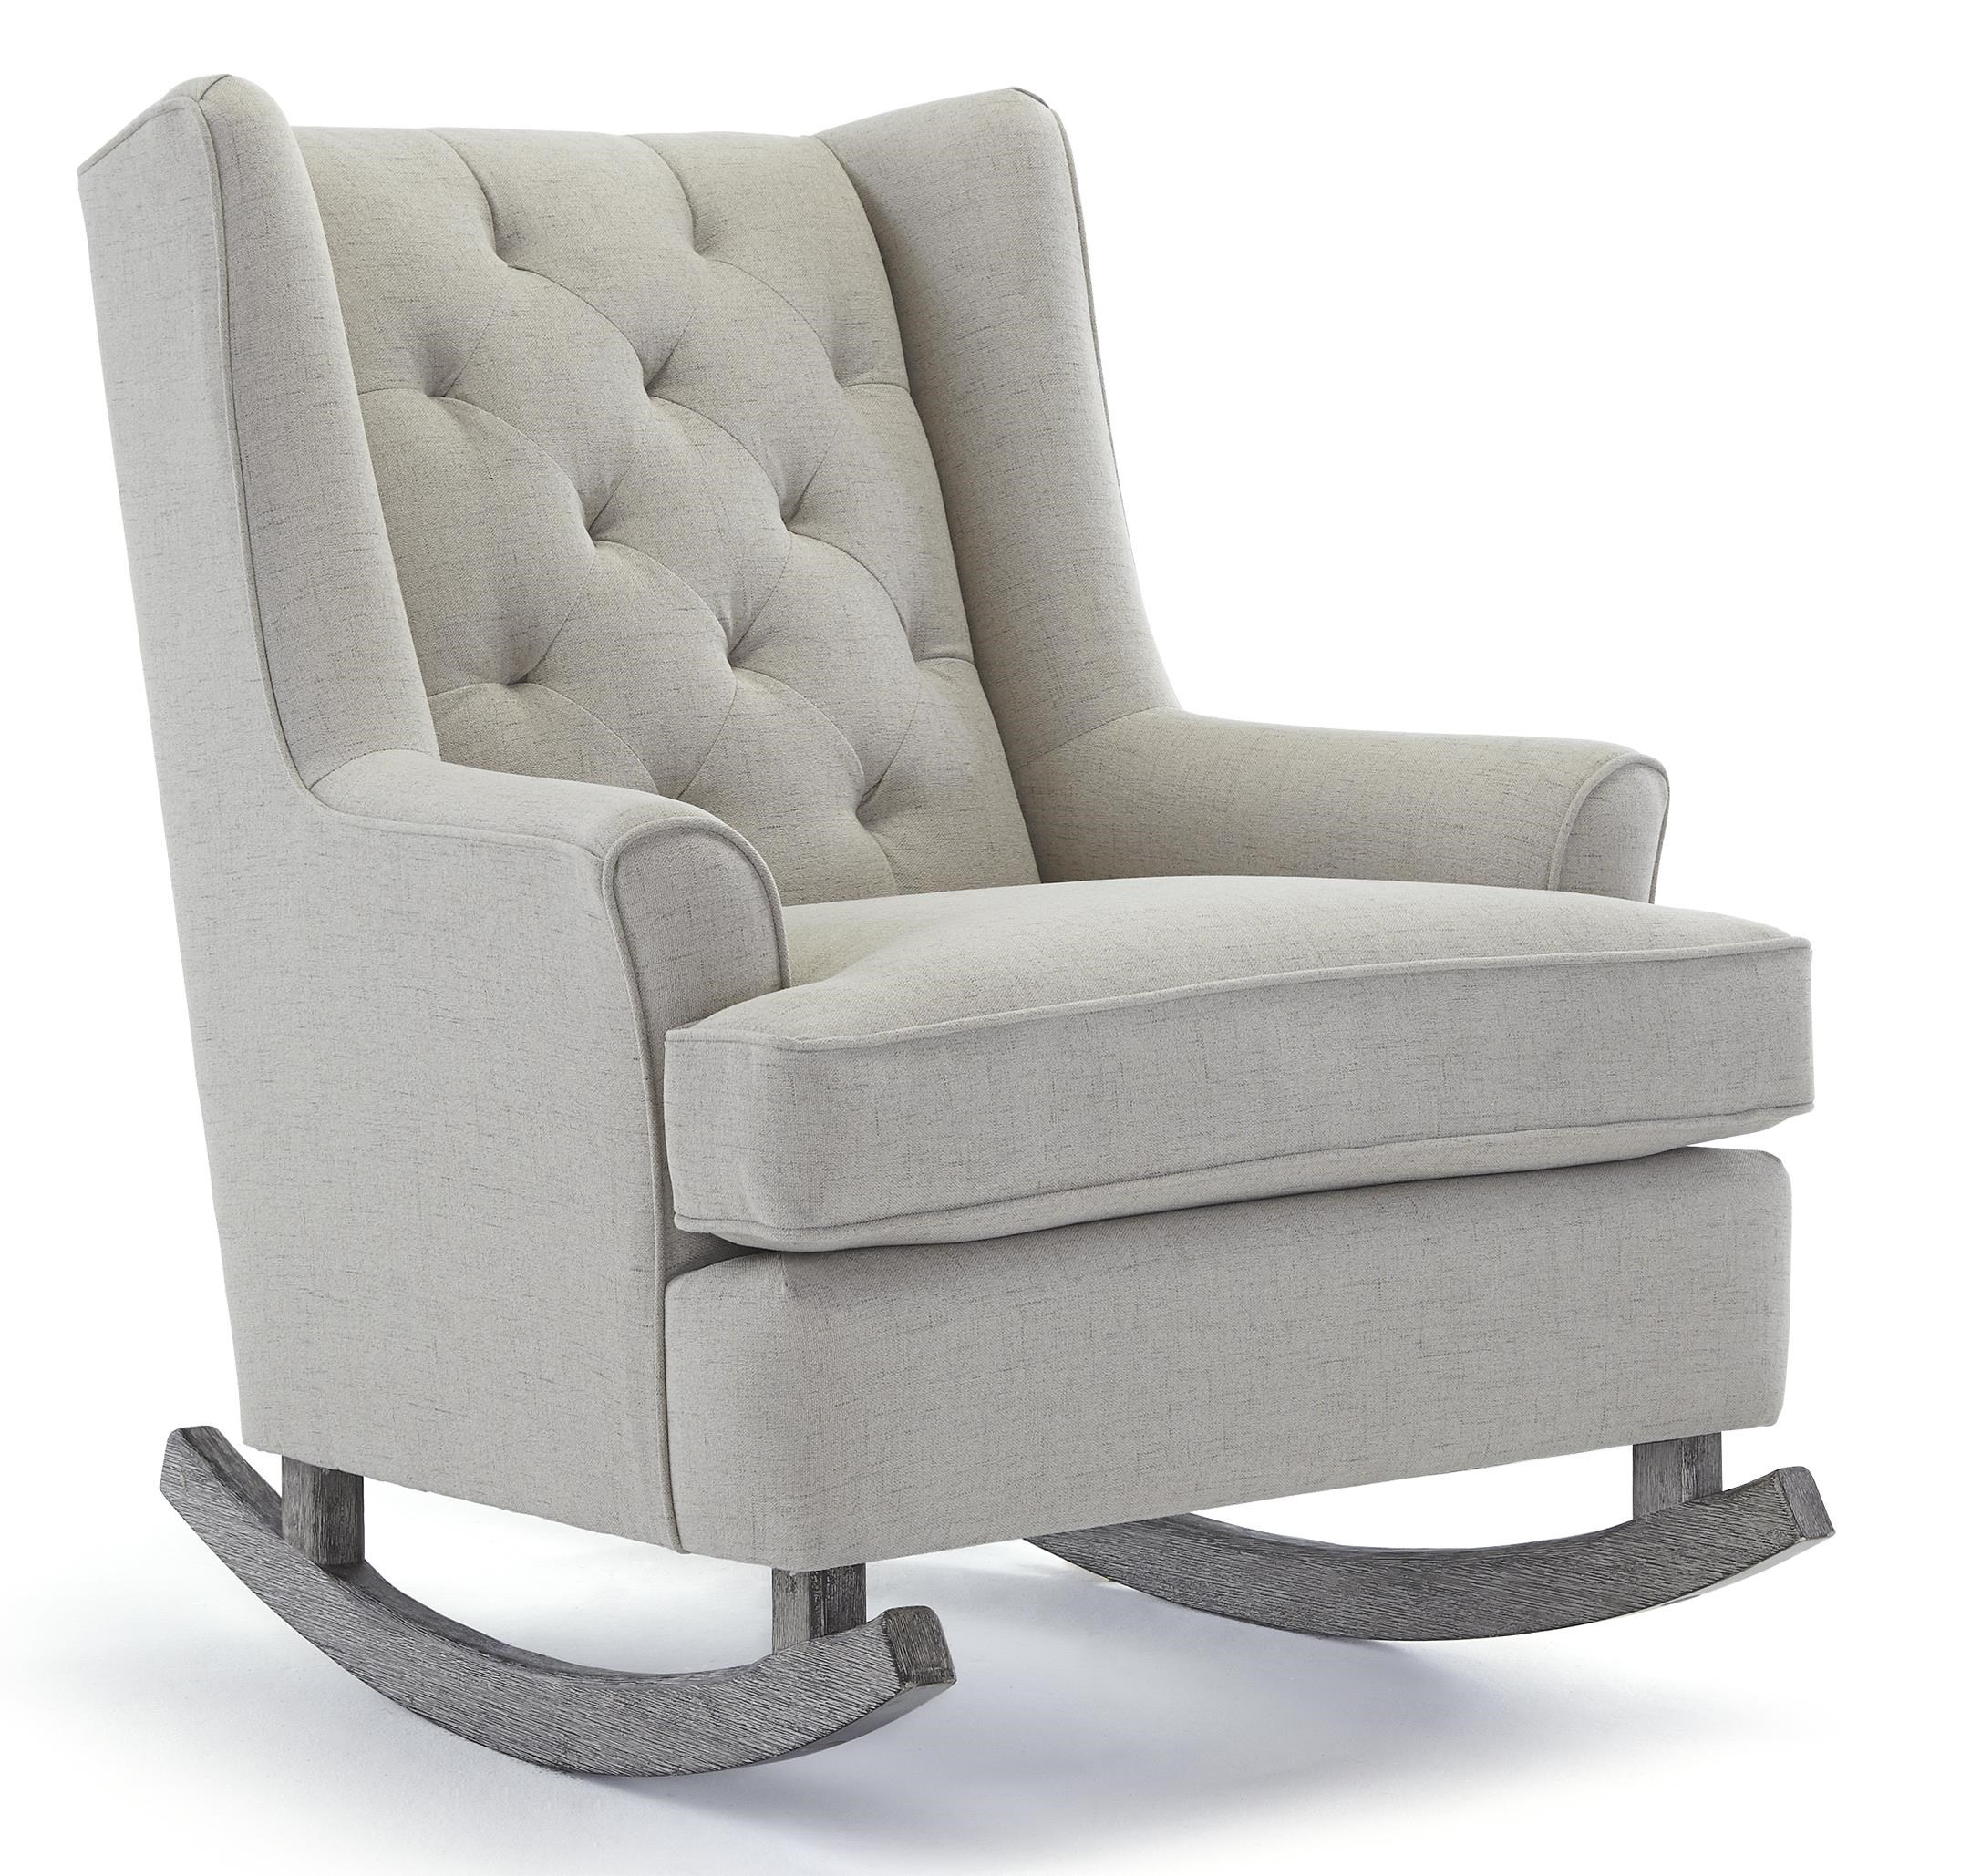 Attirant Best Home Furnishings Runner Rockers Paisley Button Tufted Rocking Chair  With Wood Runners